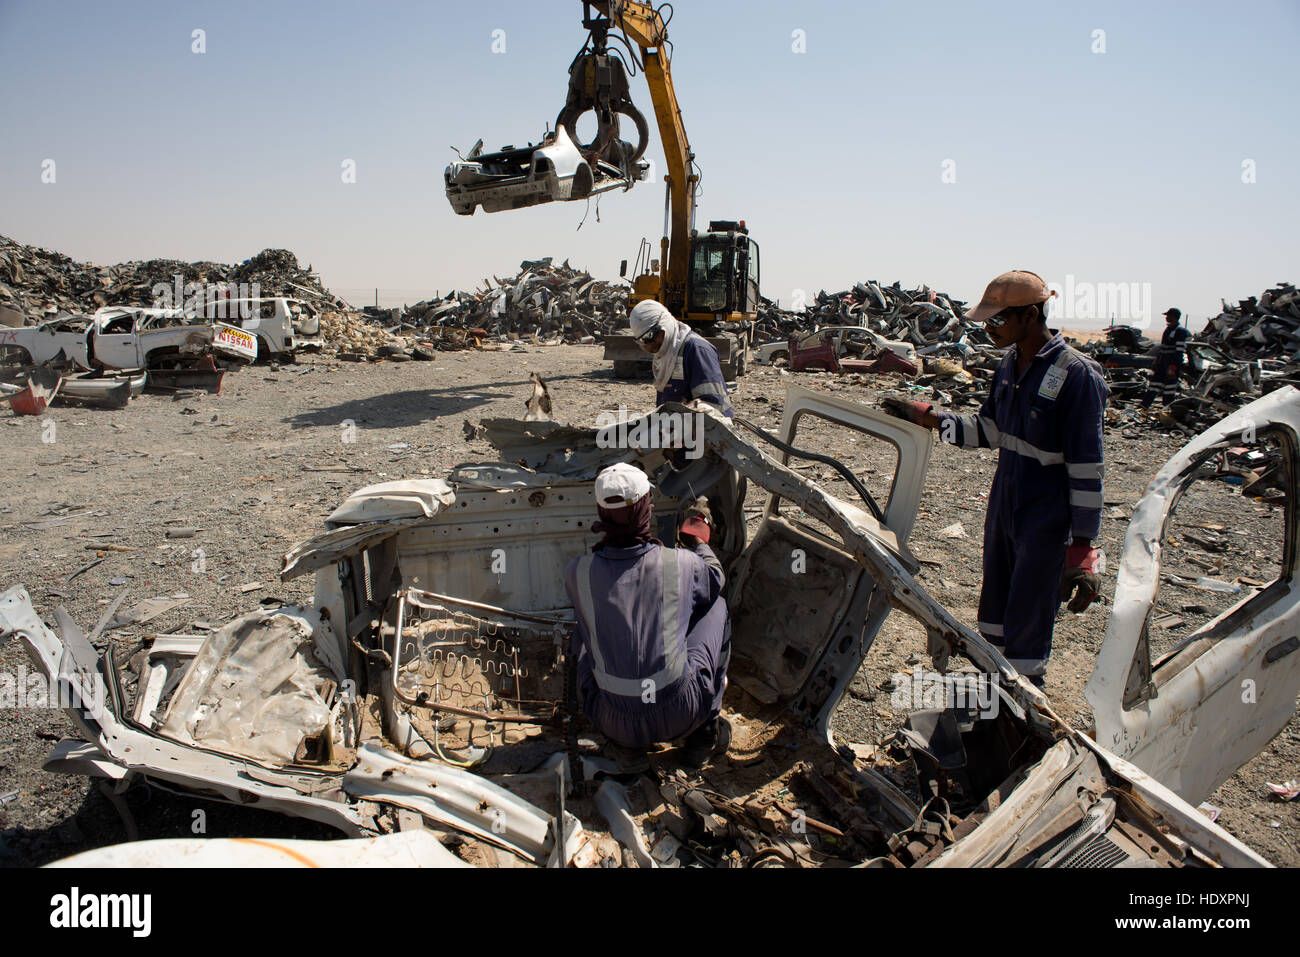 Migrant workers dismantle cars for recycling - Stock Image